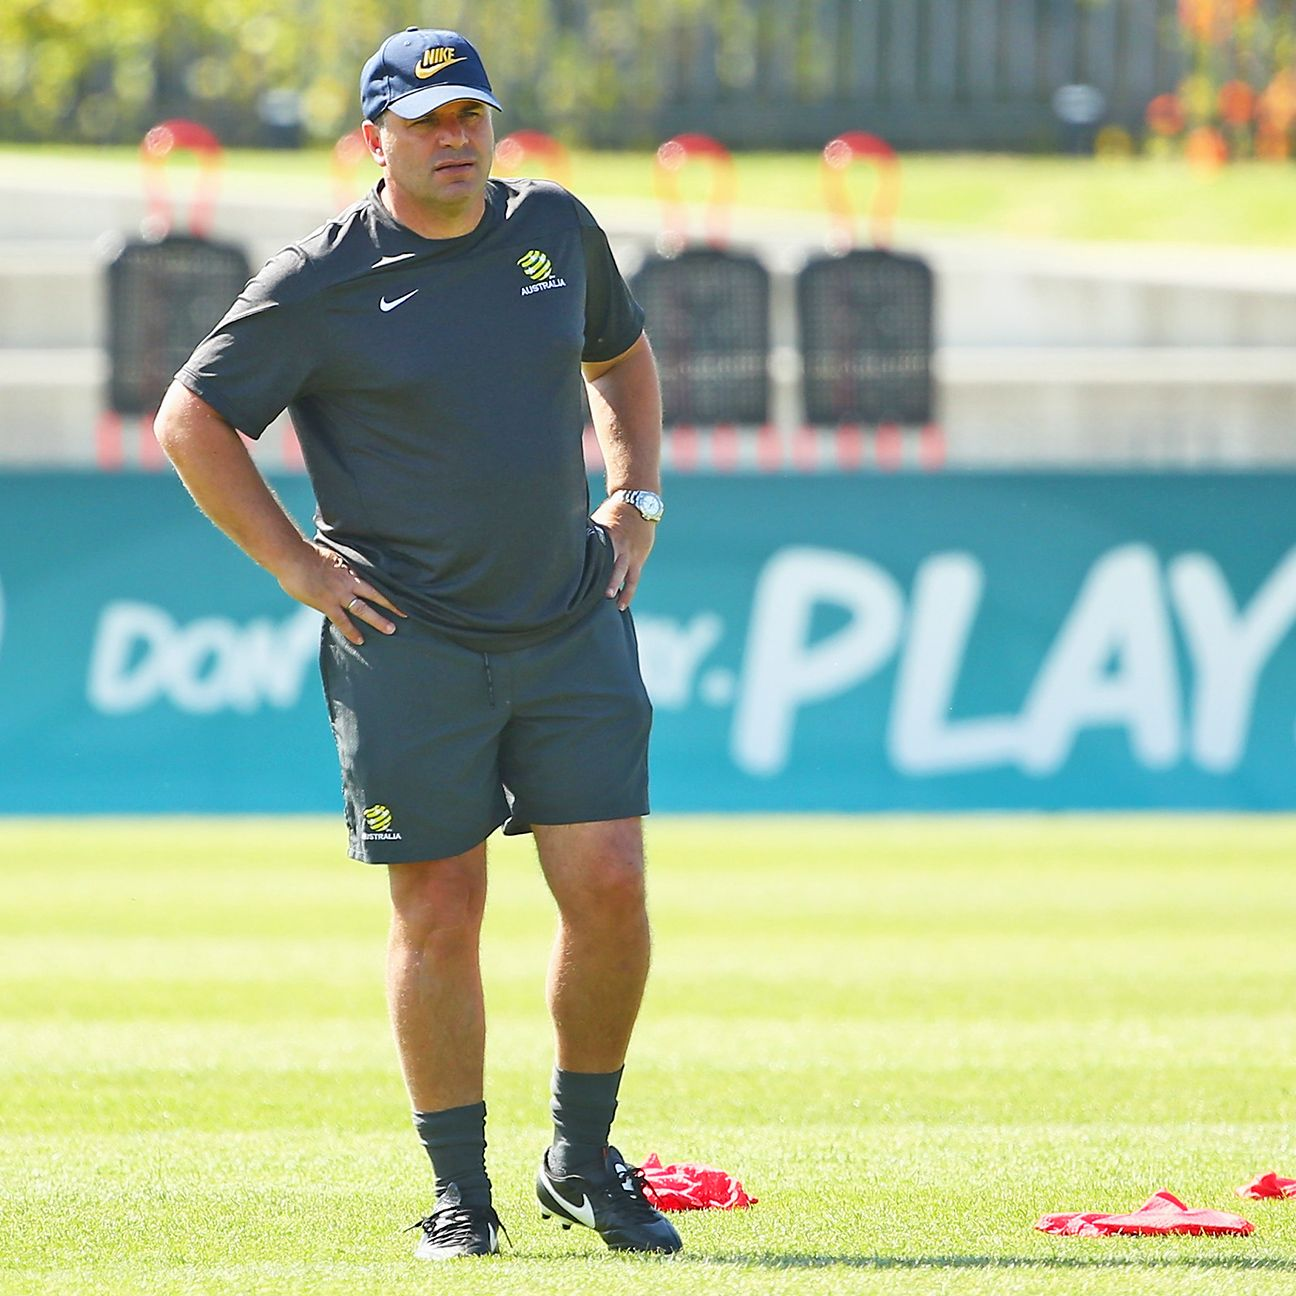 Three points in the group stage opener versus Kuwait would provide a big boost for Australia head coach Ange Postecoglou.